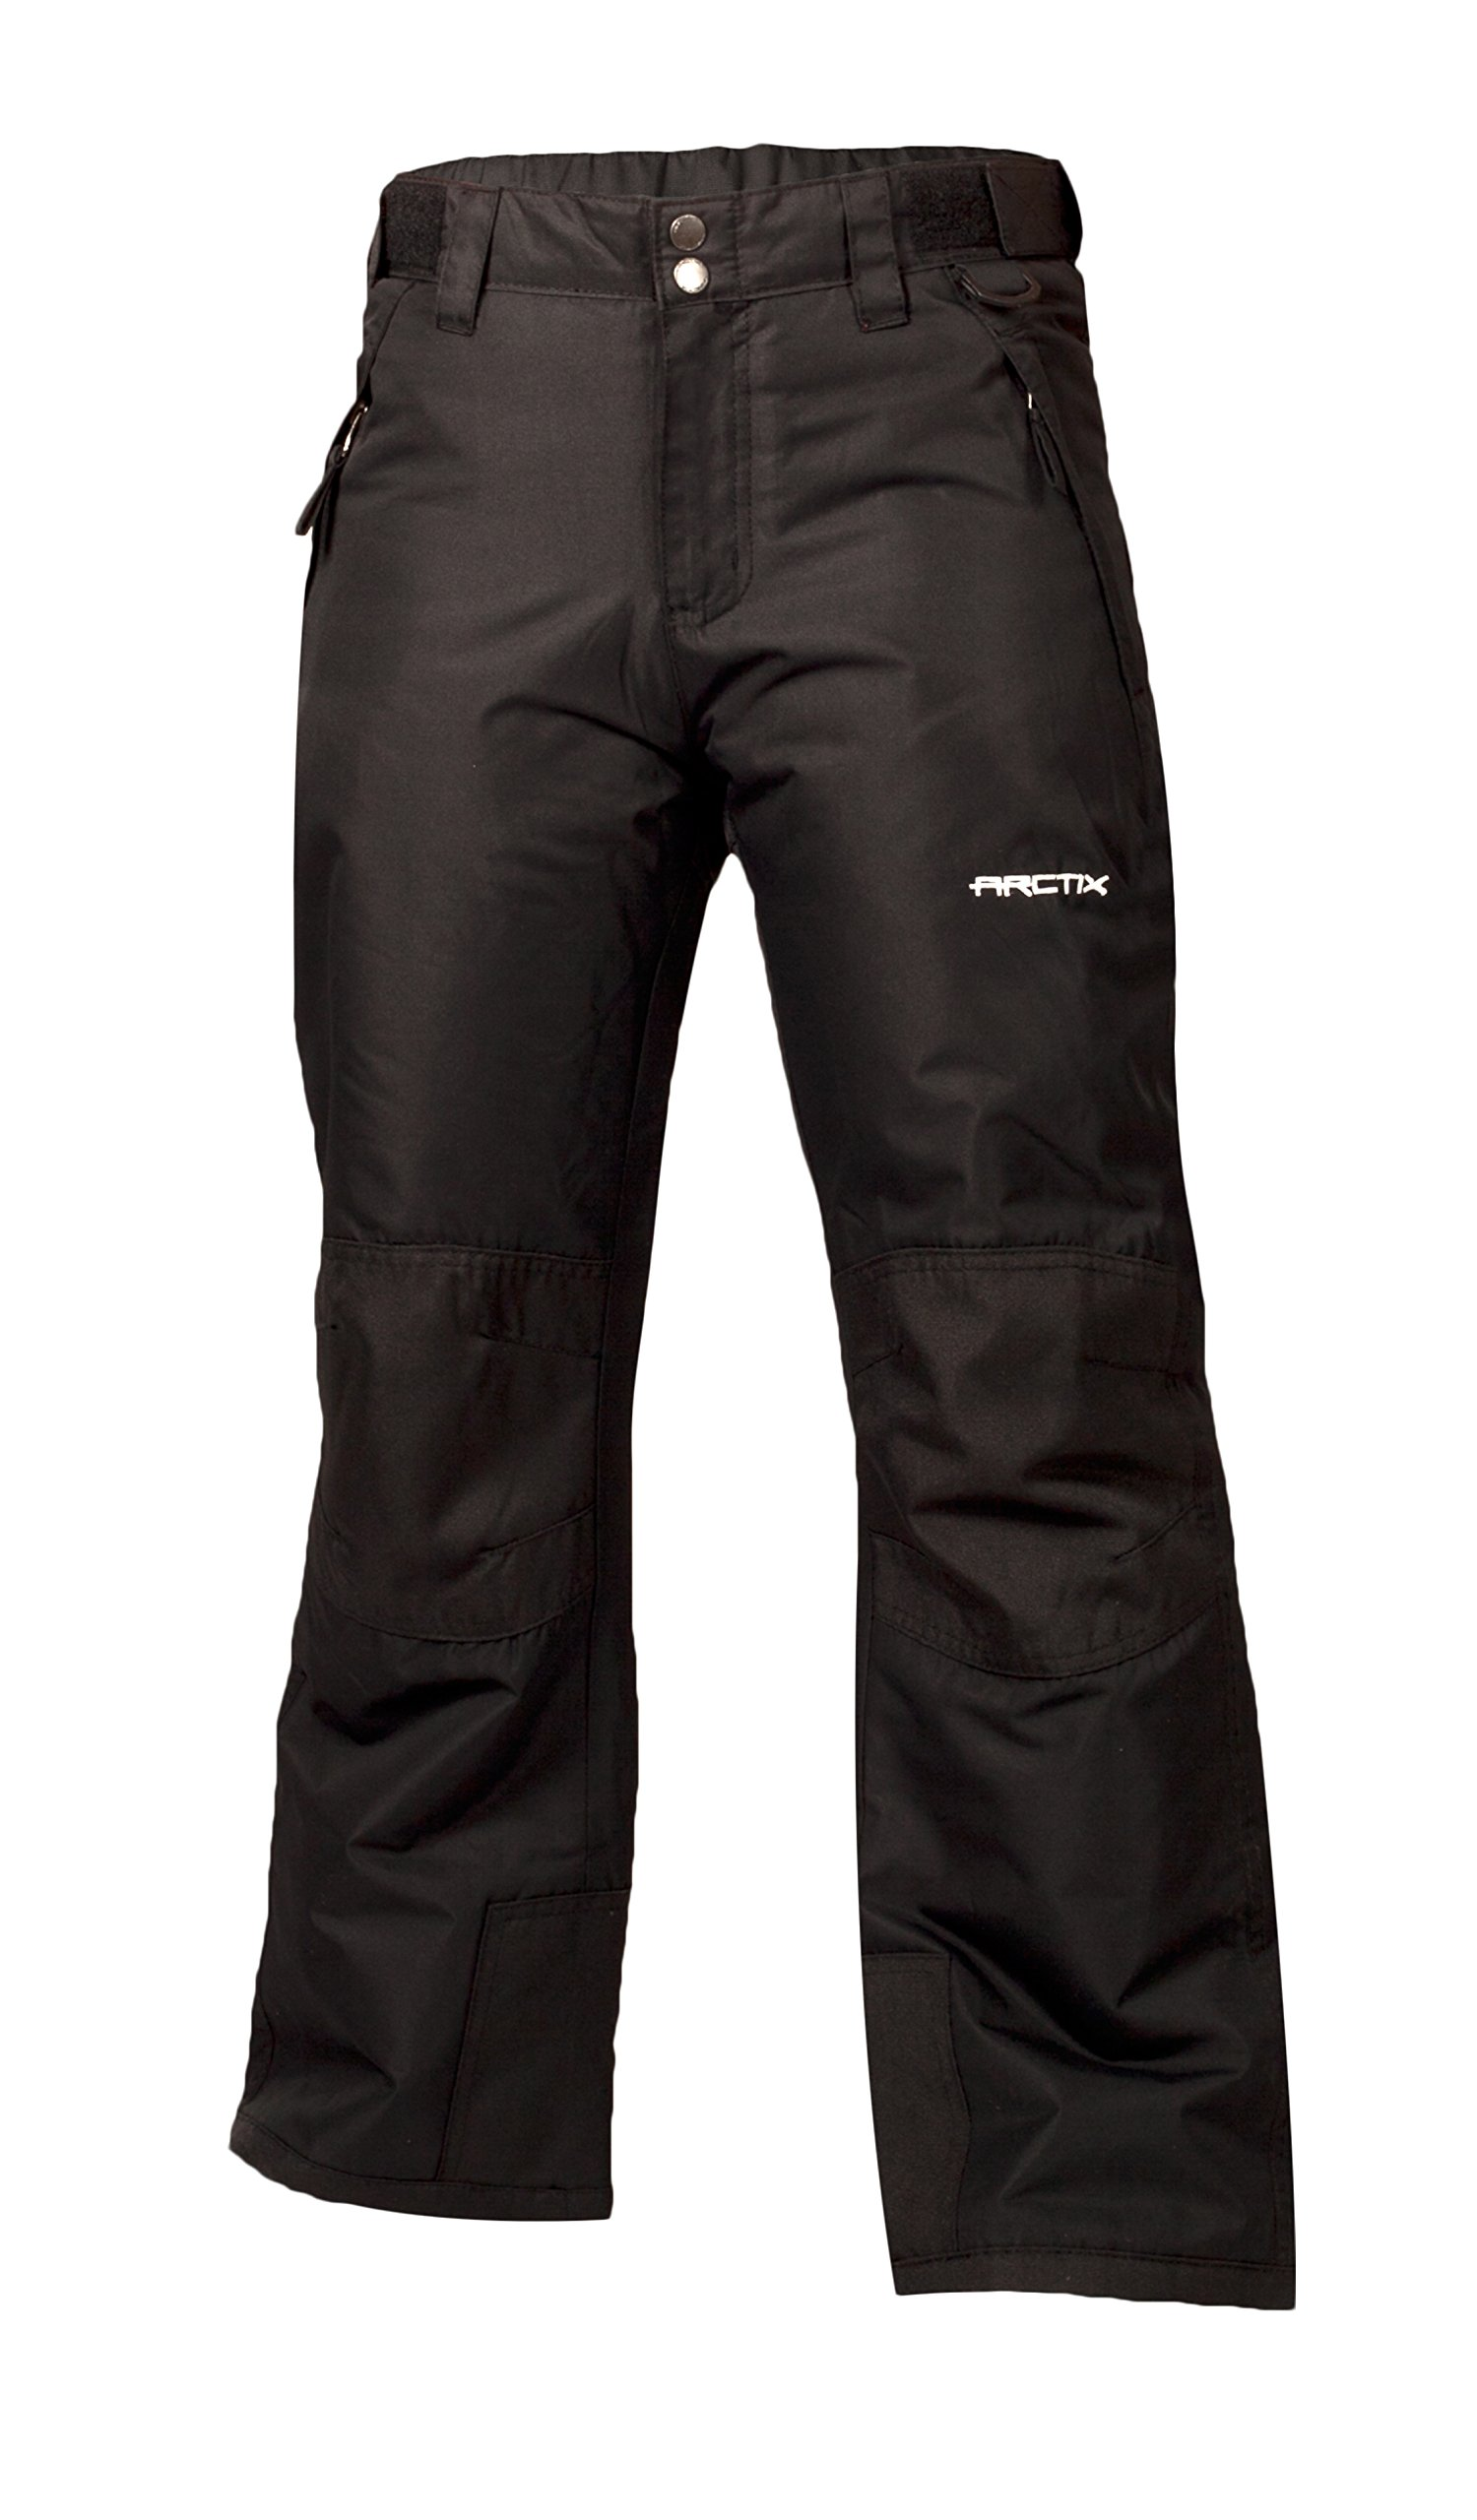 Arctix Youth Snow Pants with Reinforced Knees and Seat, Black, X-Small